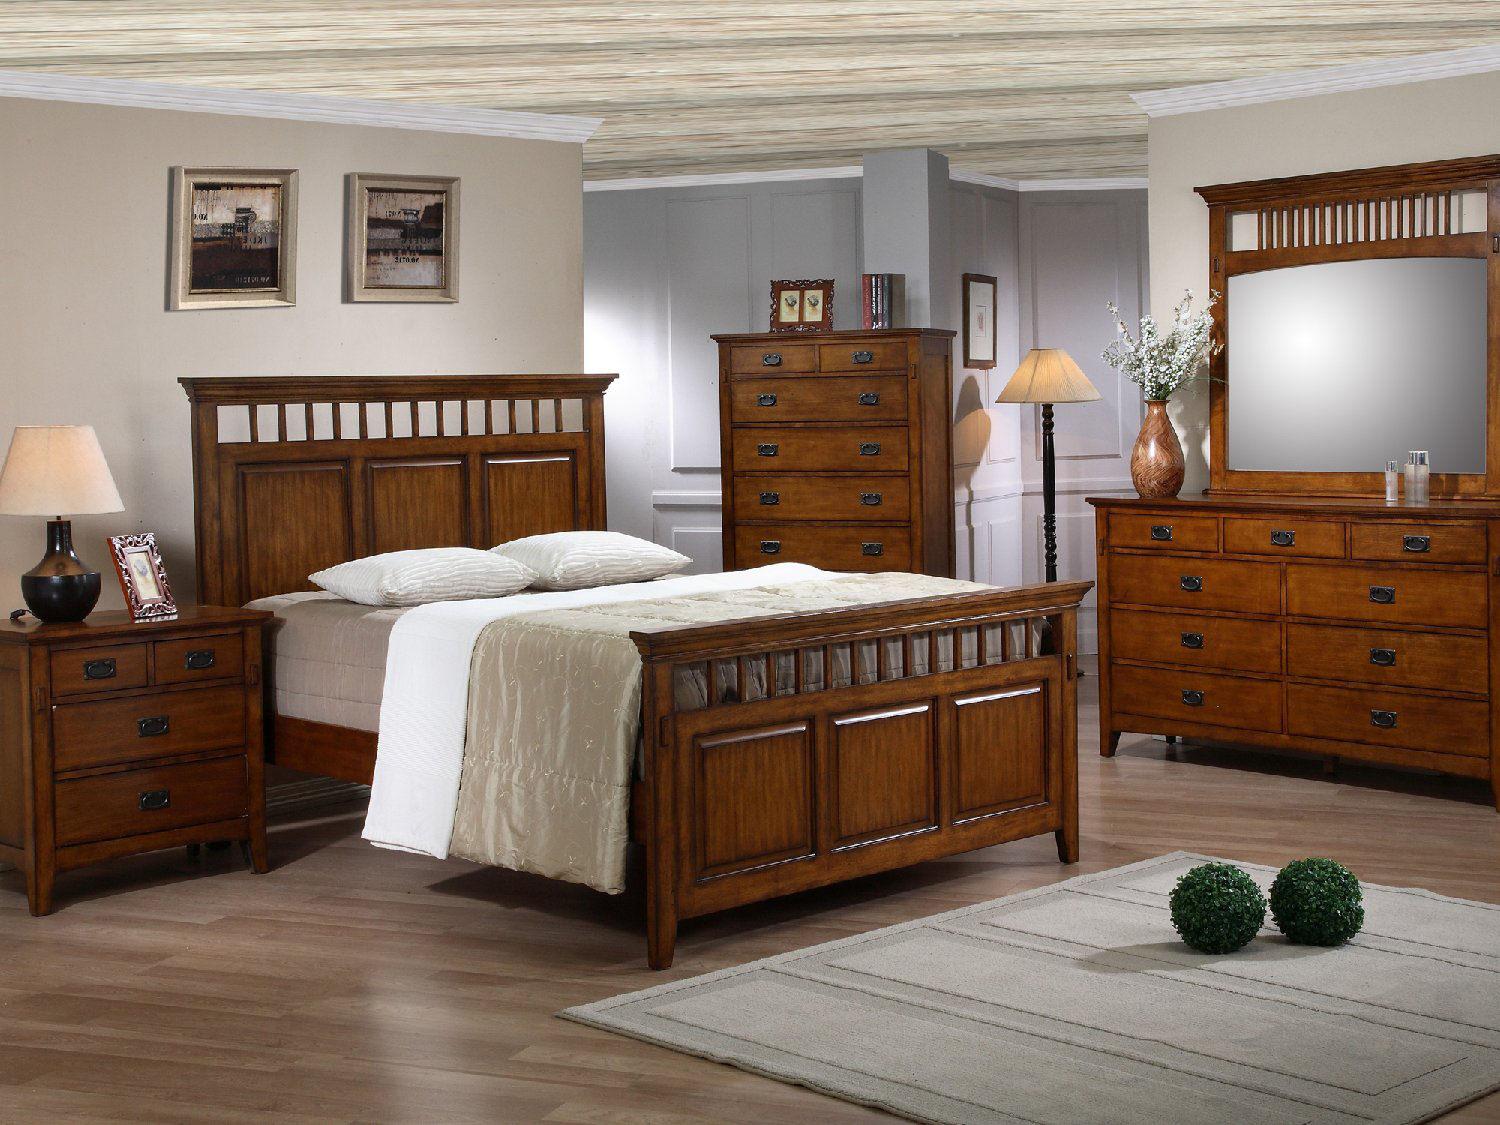 Woodbury Furniture Stores